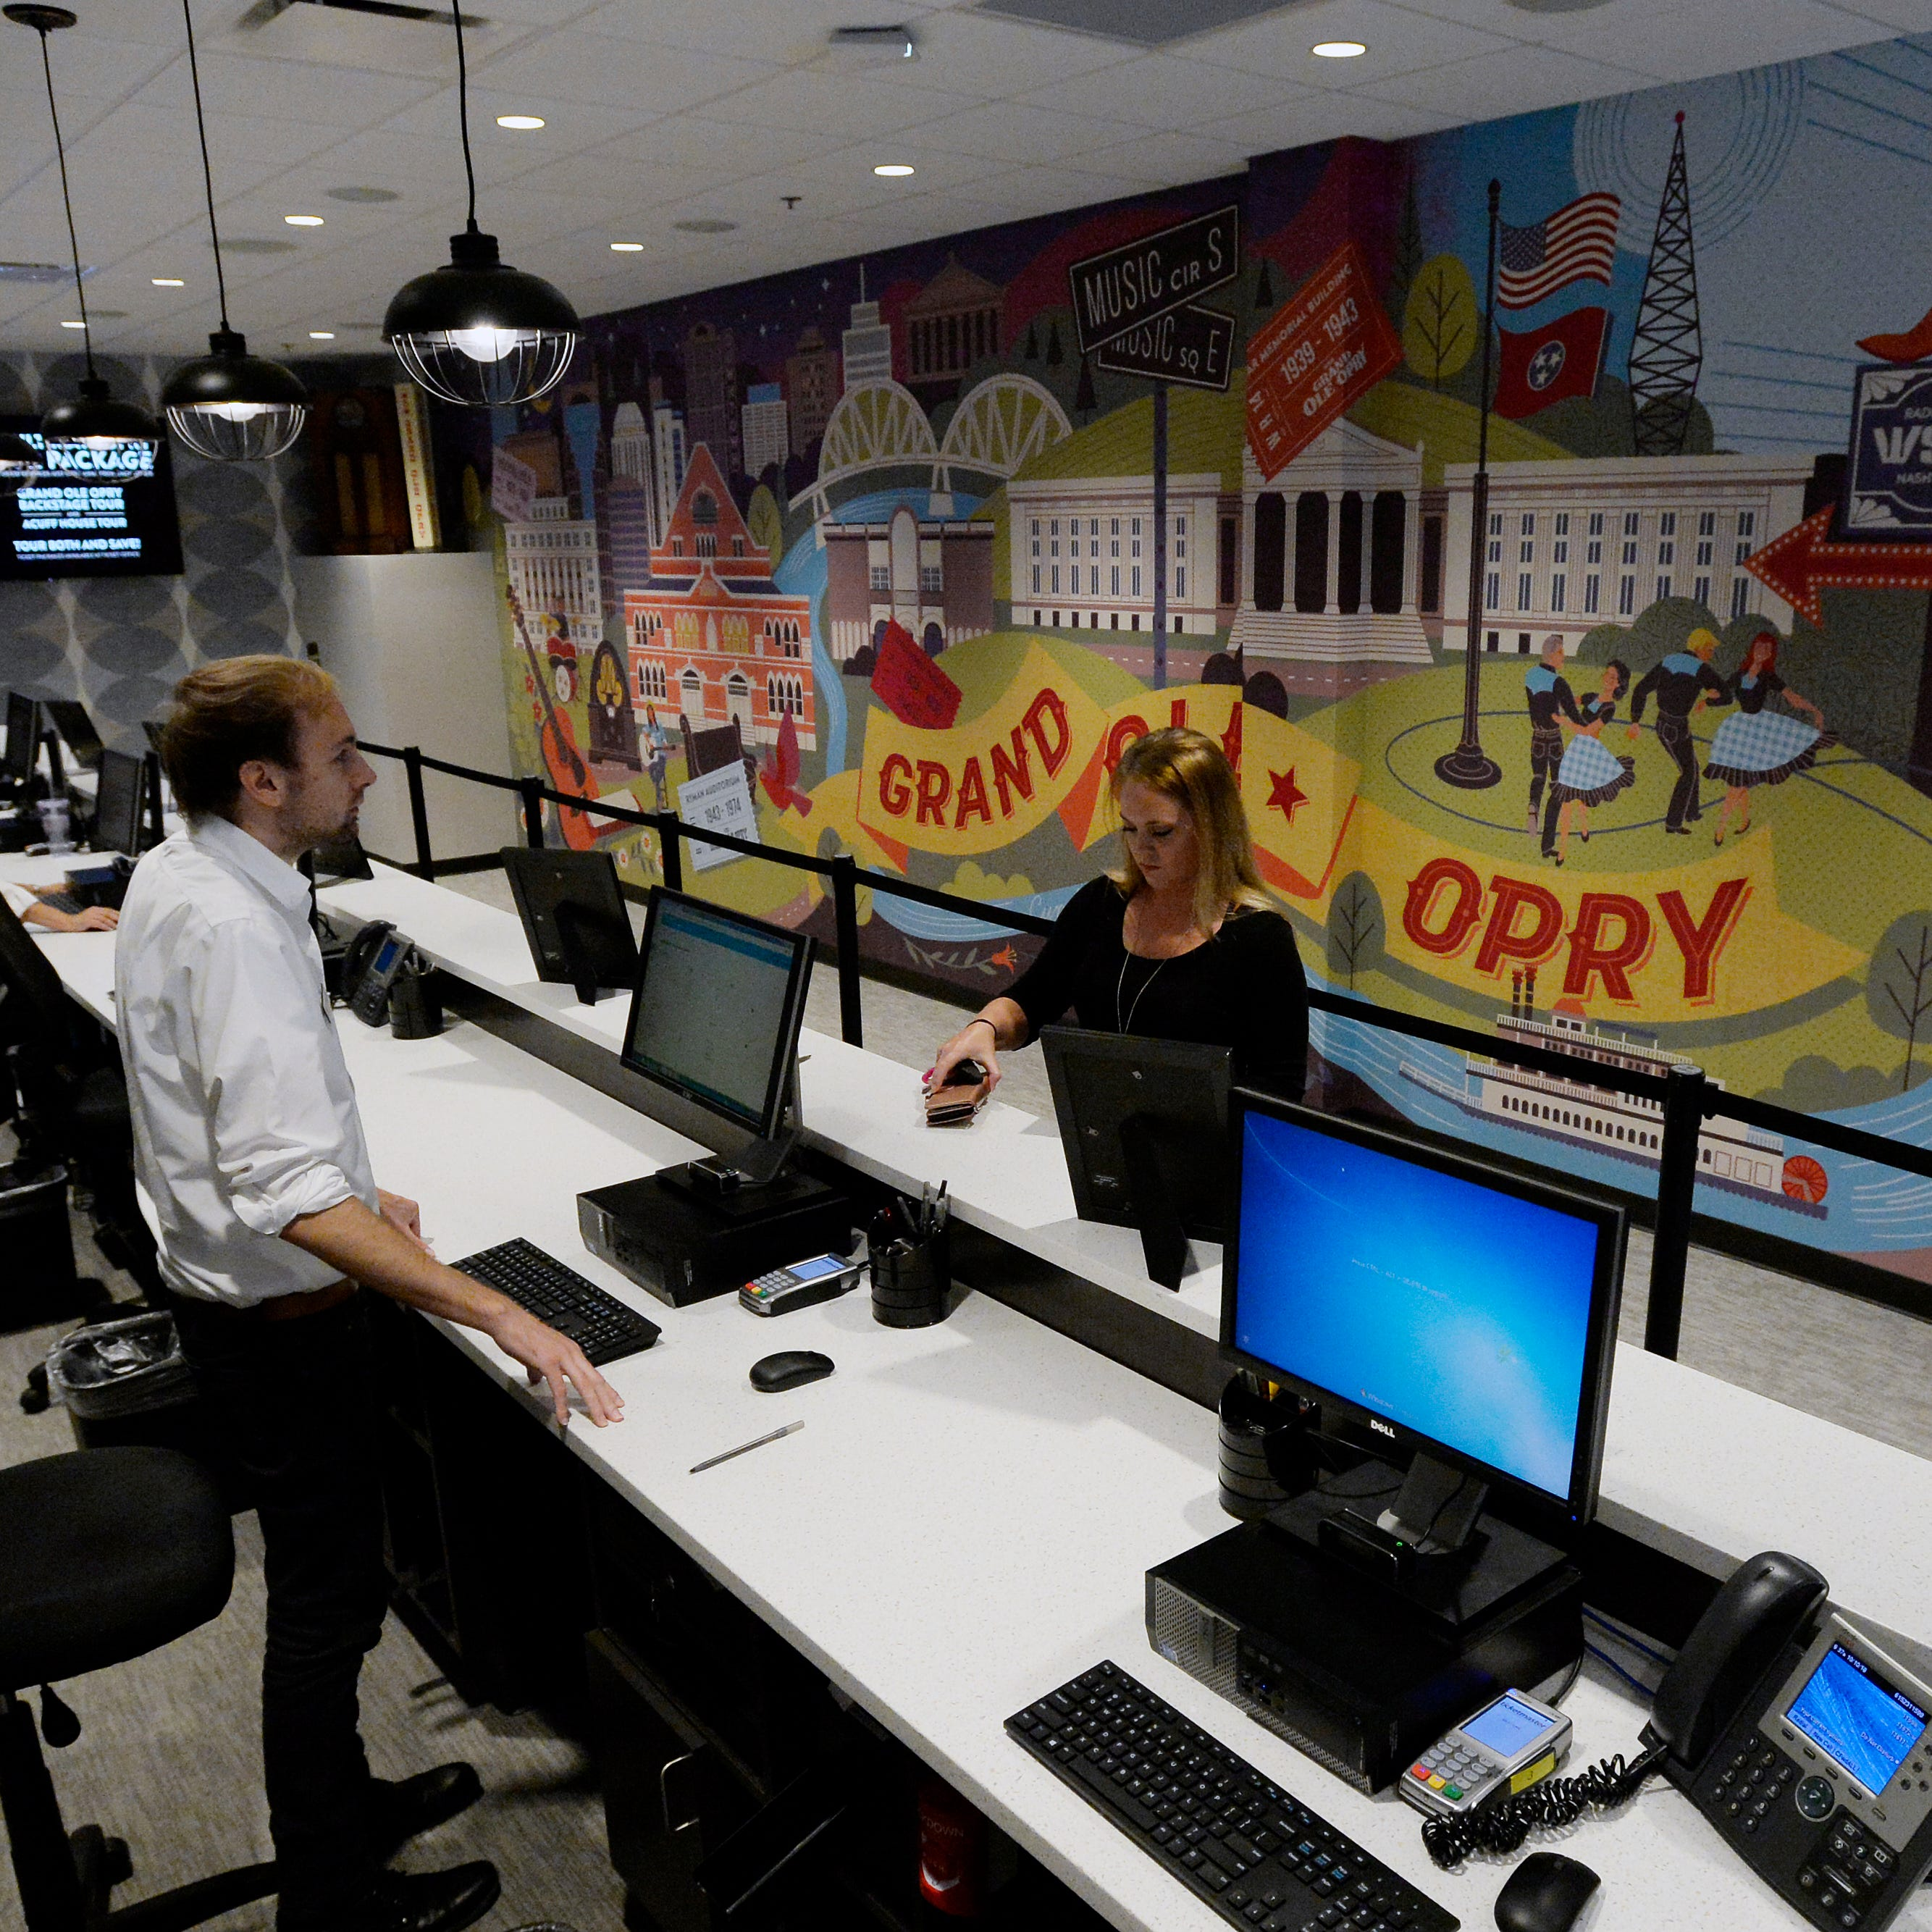 First look: Inside the Grand Ole Opry's $12M expansion